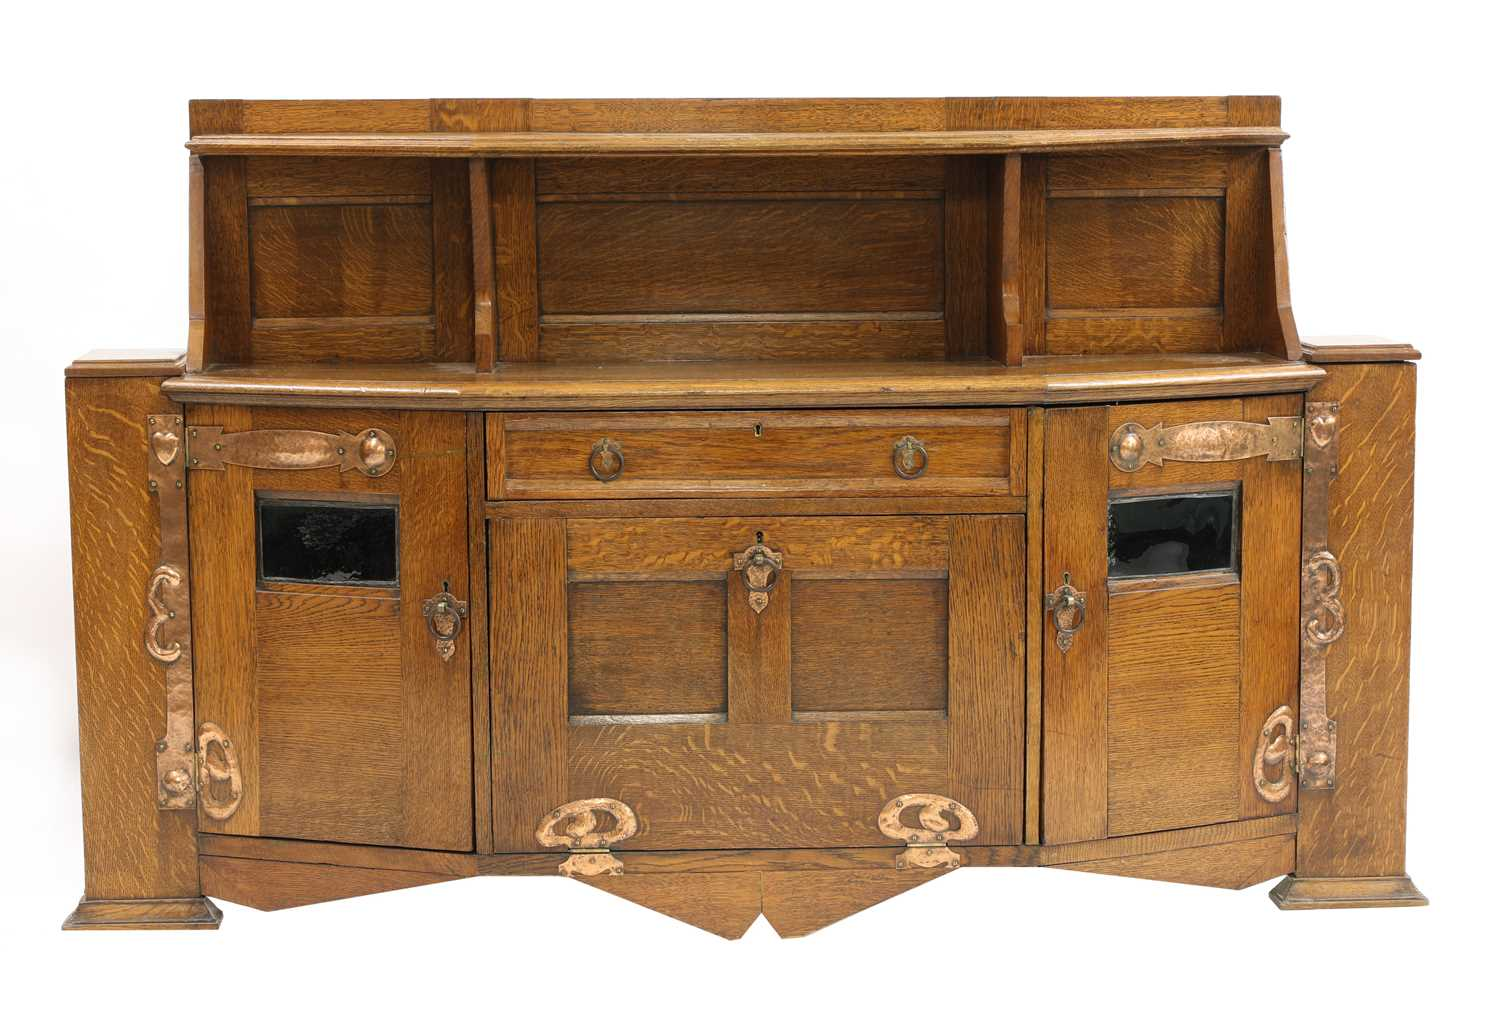 Lot 14-An Arts and Crafts oak cabinet